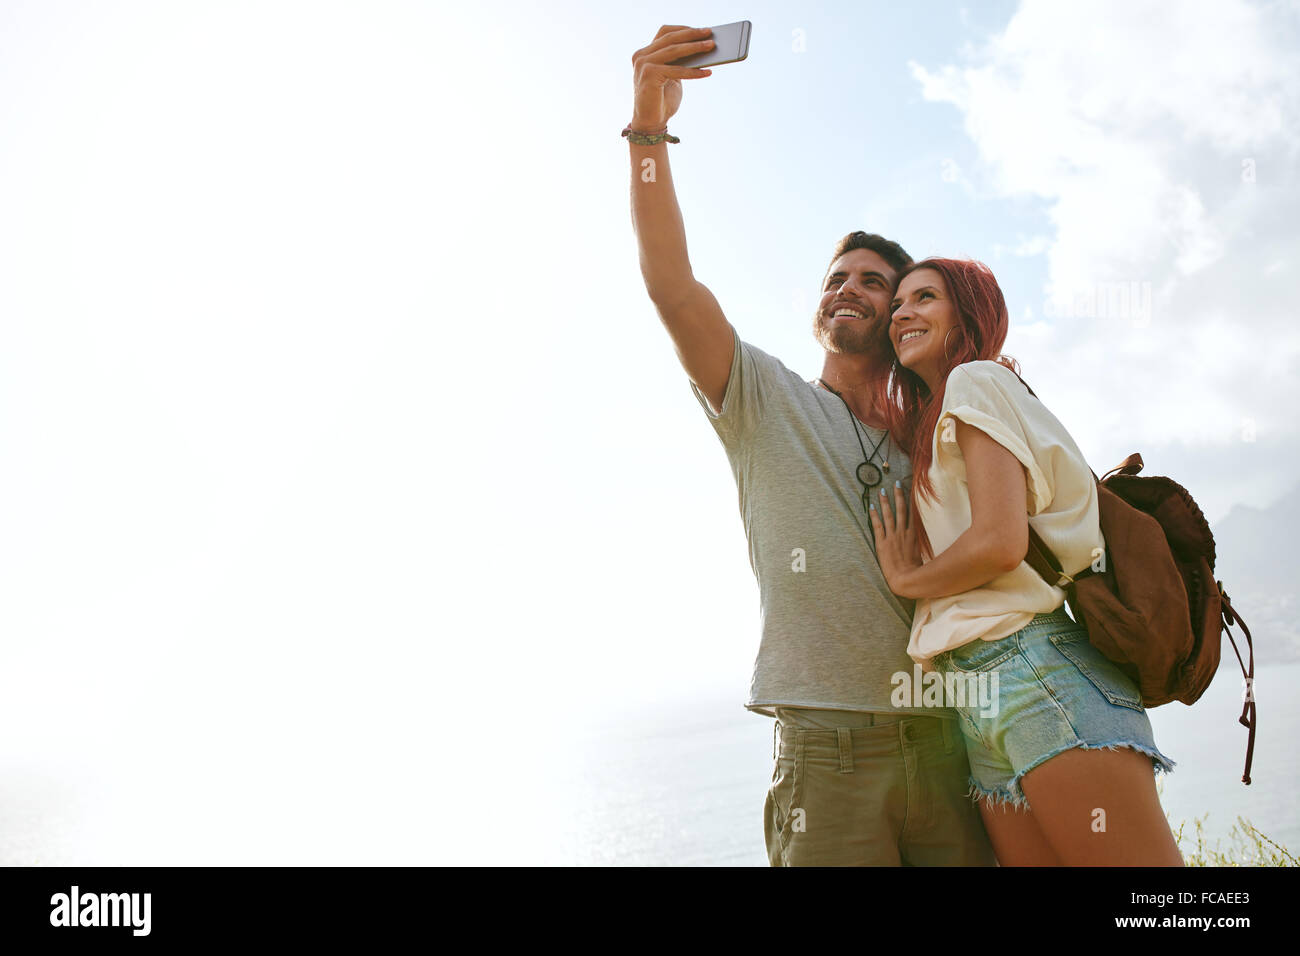 Low angle view of loving young couple on summer vacation taking a self portrait with smartphone outdoors. Relaxed - Stock Image